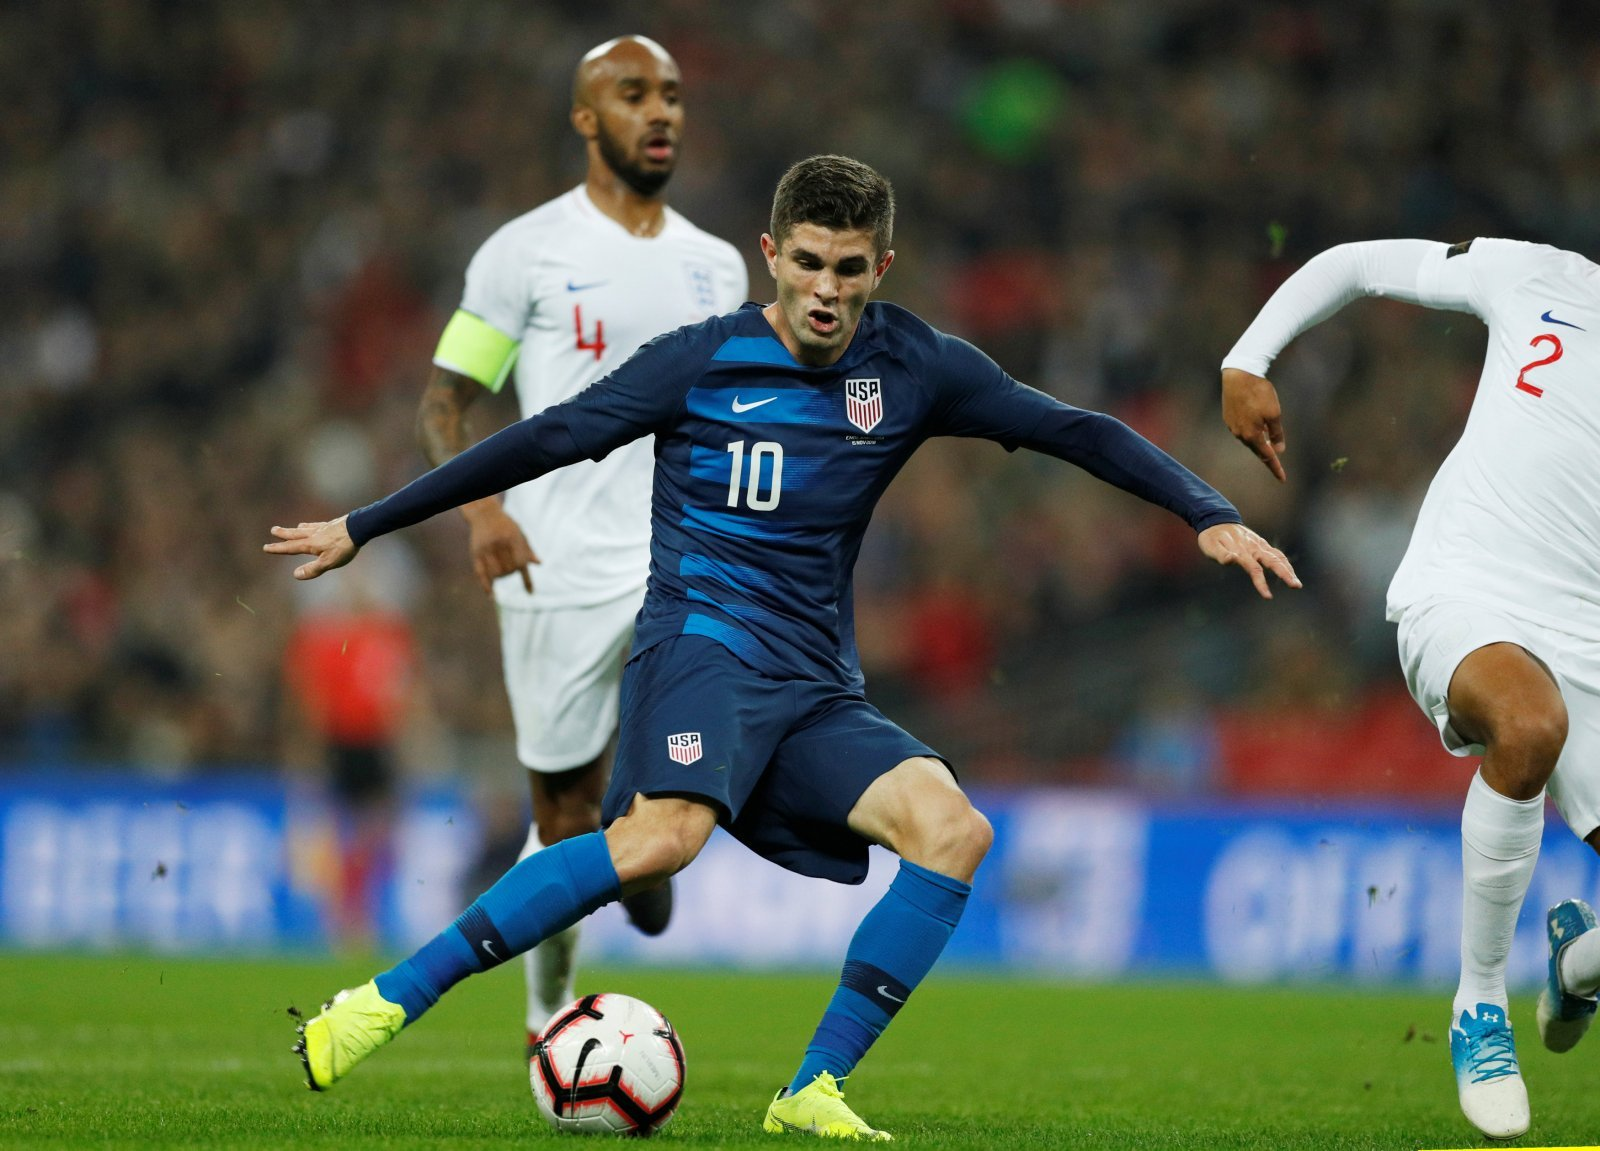 Introducing: The man to take Liverpool to new heights, Christian Pulisic